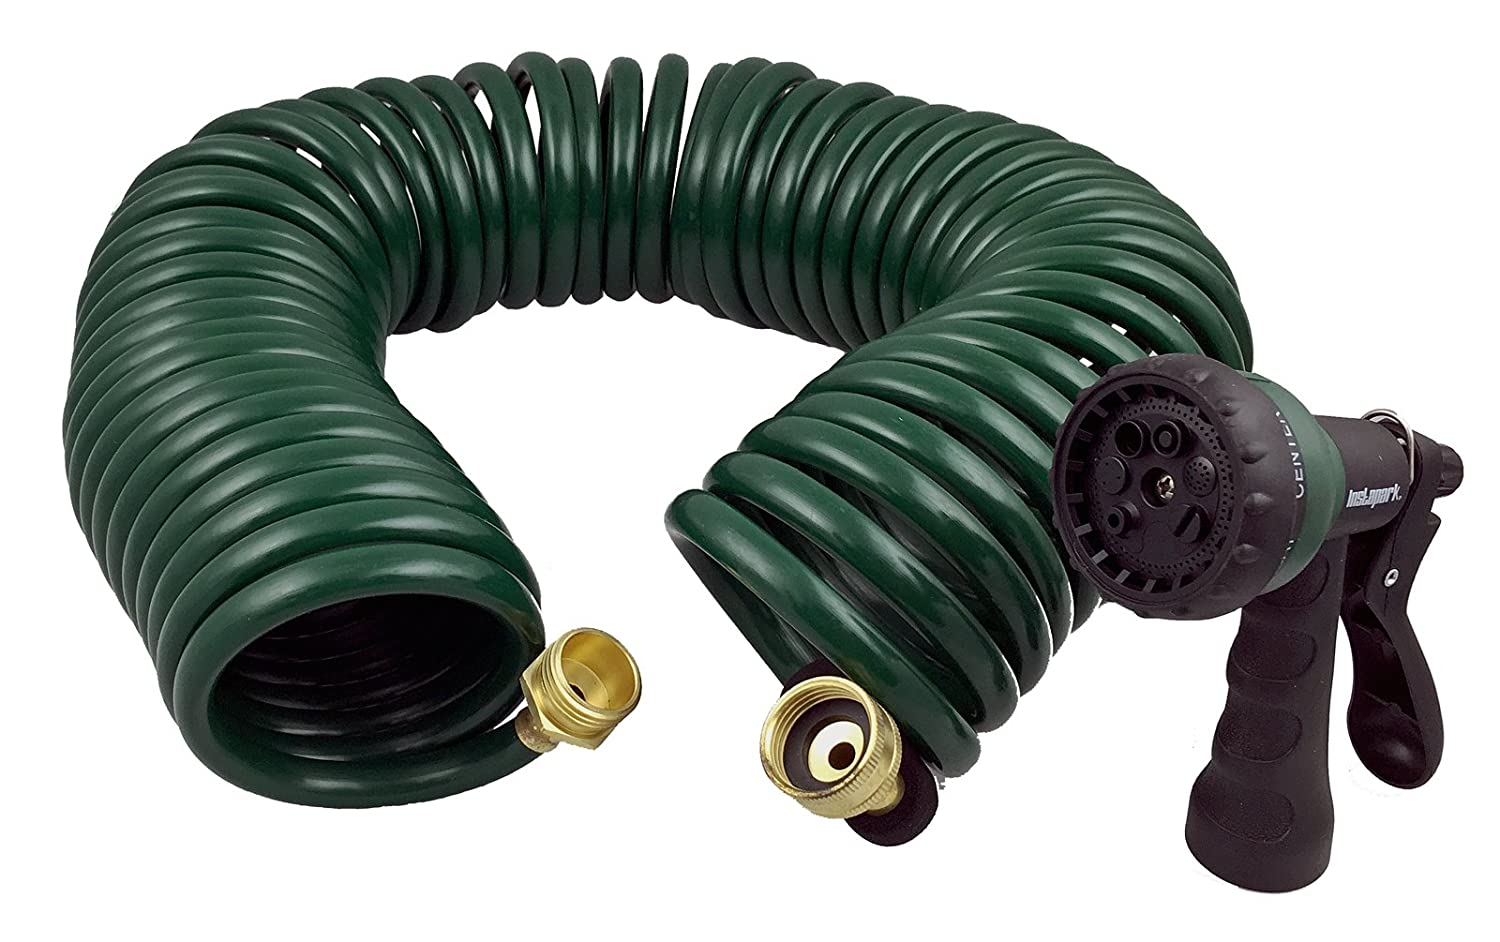 Instapark GHN-06 Heavy-Duty EVA Recoil Garden Hose with 7-Pattern Spray Nozzle, Green, 50 Foot